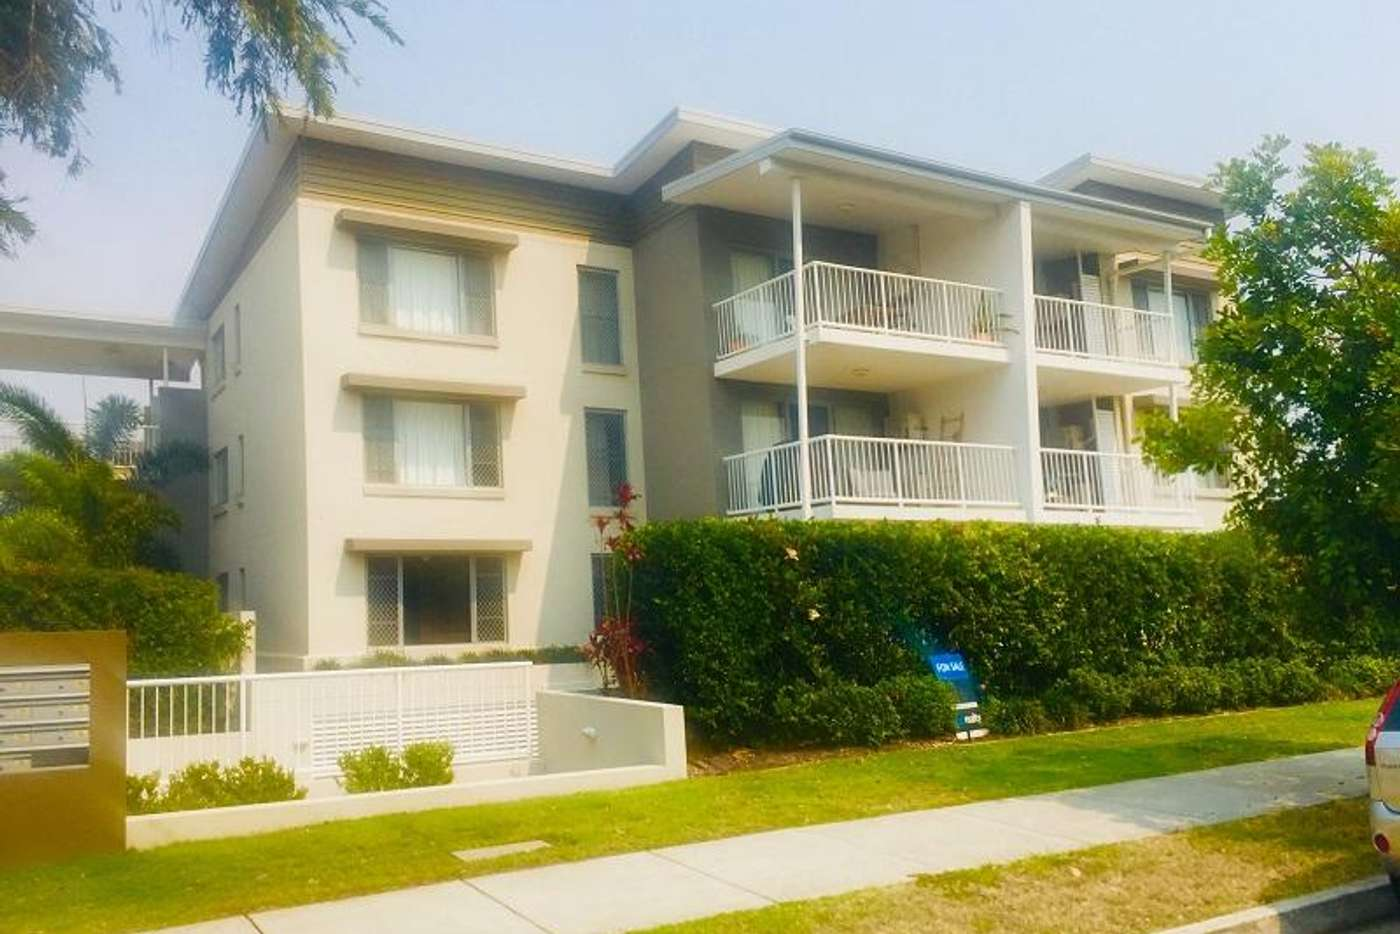 Main view of Homely unit listing, 1/8 Ahern Street, Labrador QLD 4215